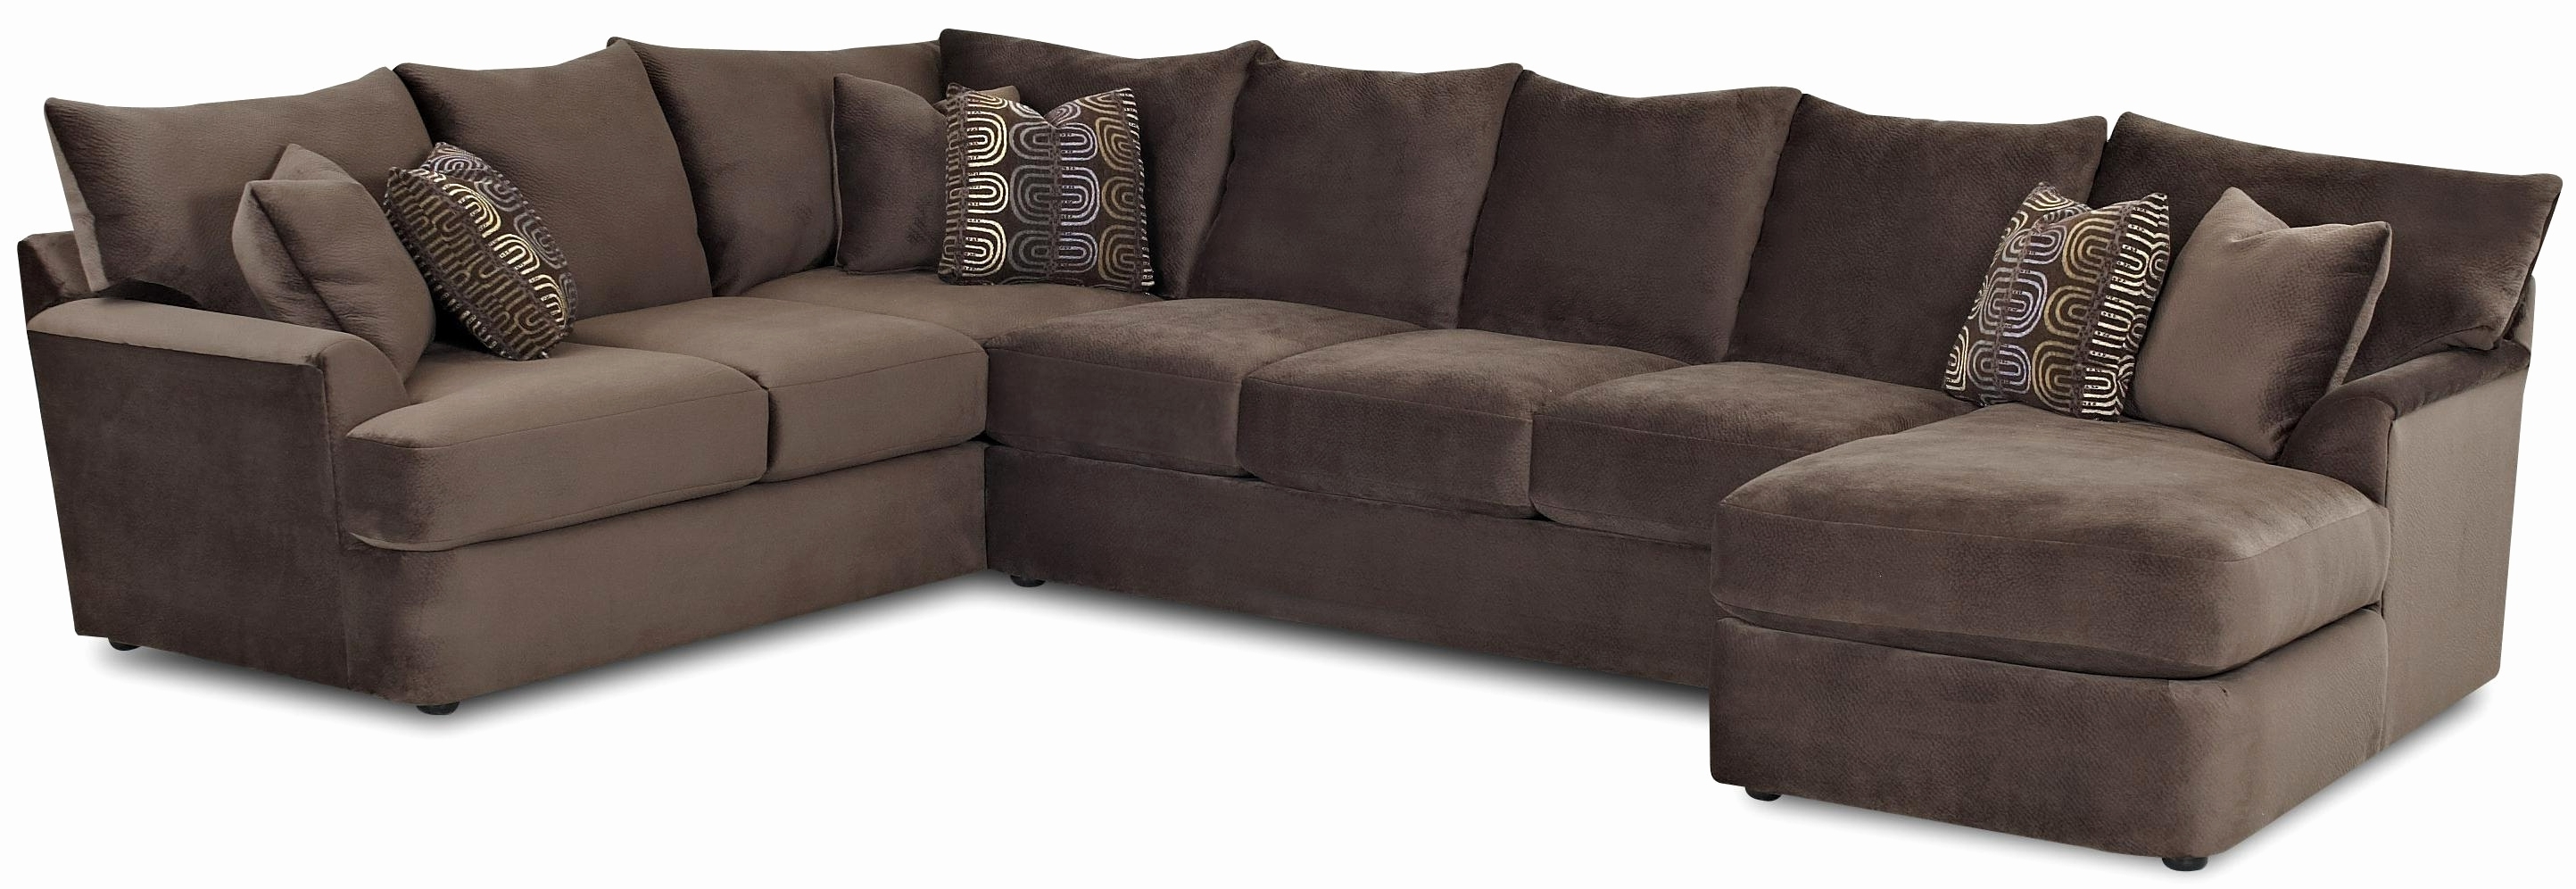 Fashionable New Grey L Shaped Couch 2018 – Couches And Sofas Ideas With Regard To Leather L Shaped Sectional Sofas (View 18 of 20)